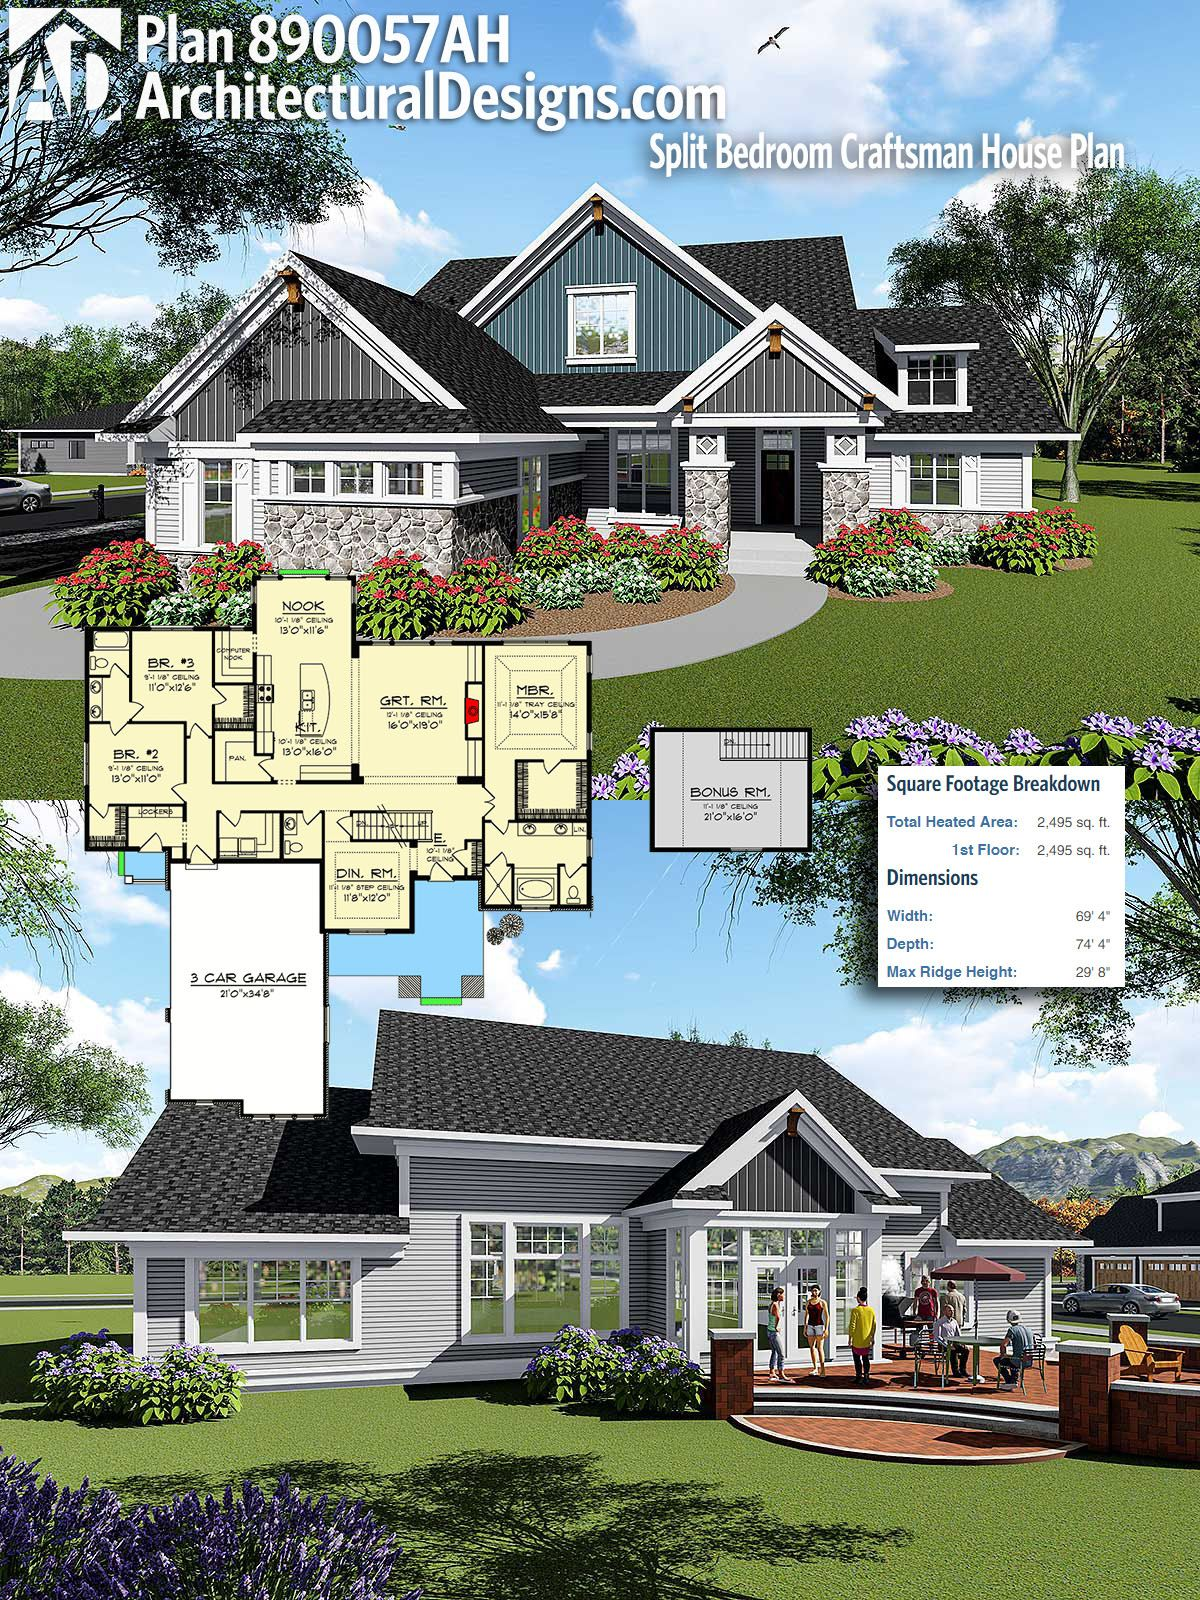 Architectural Designs Craftsman House Plan 890057AH gives